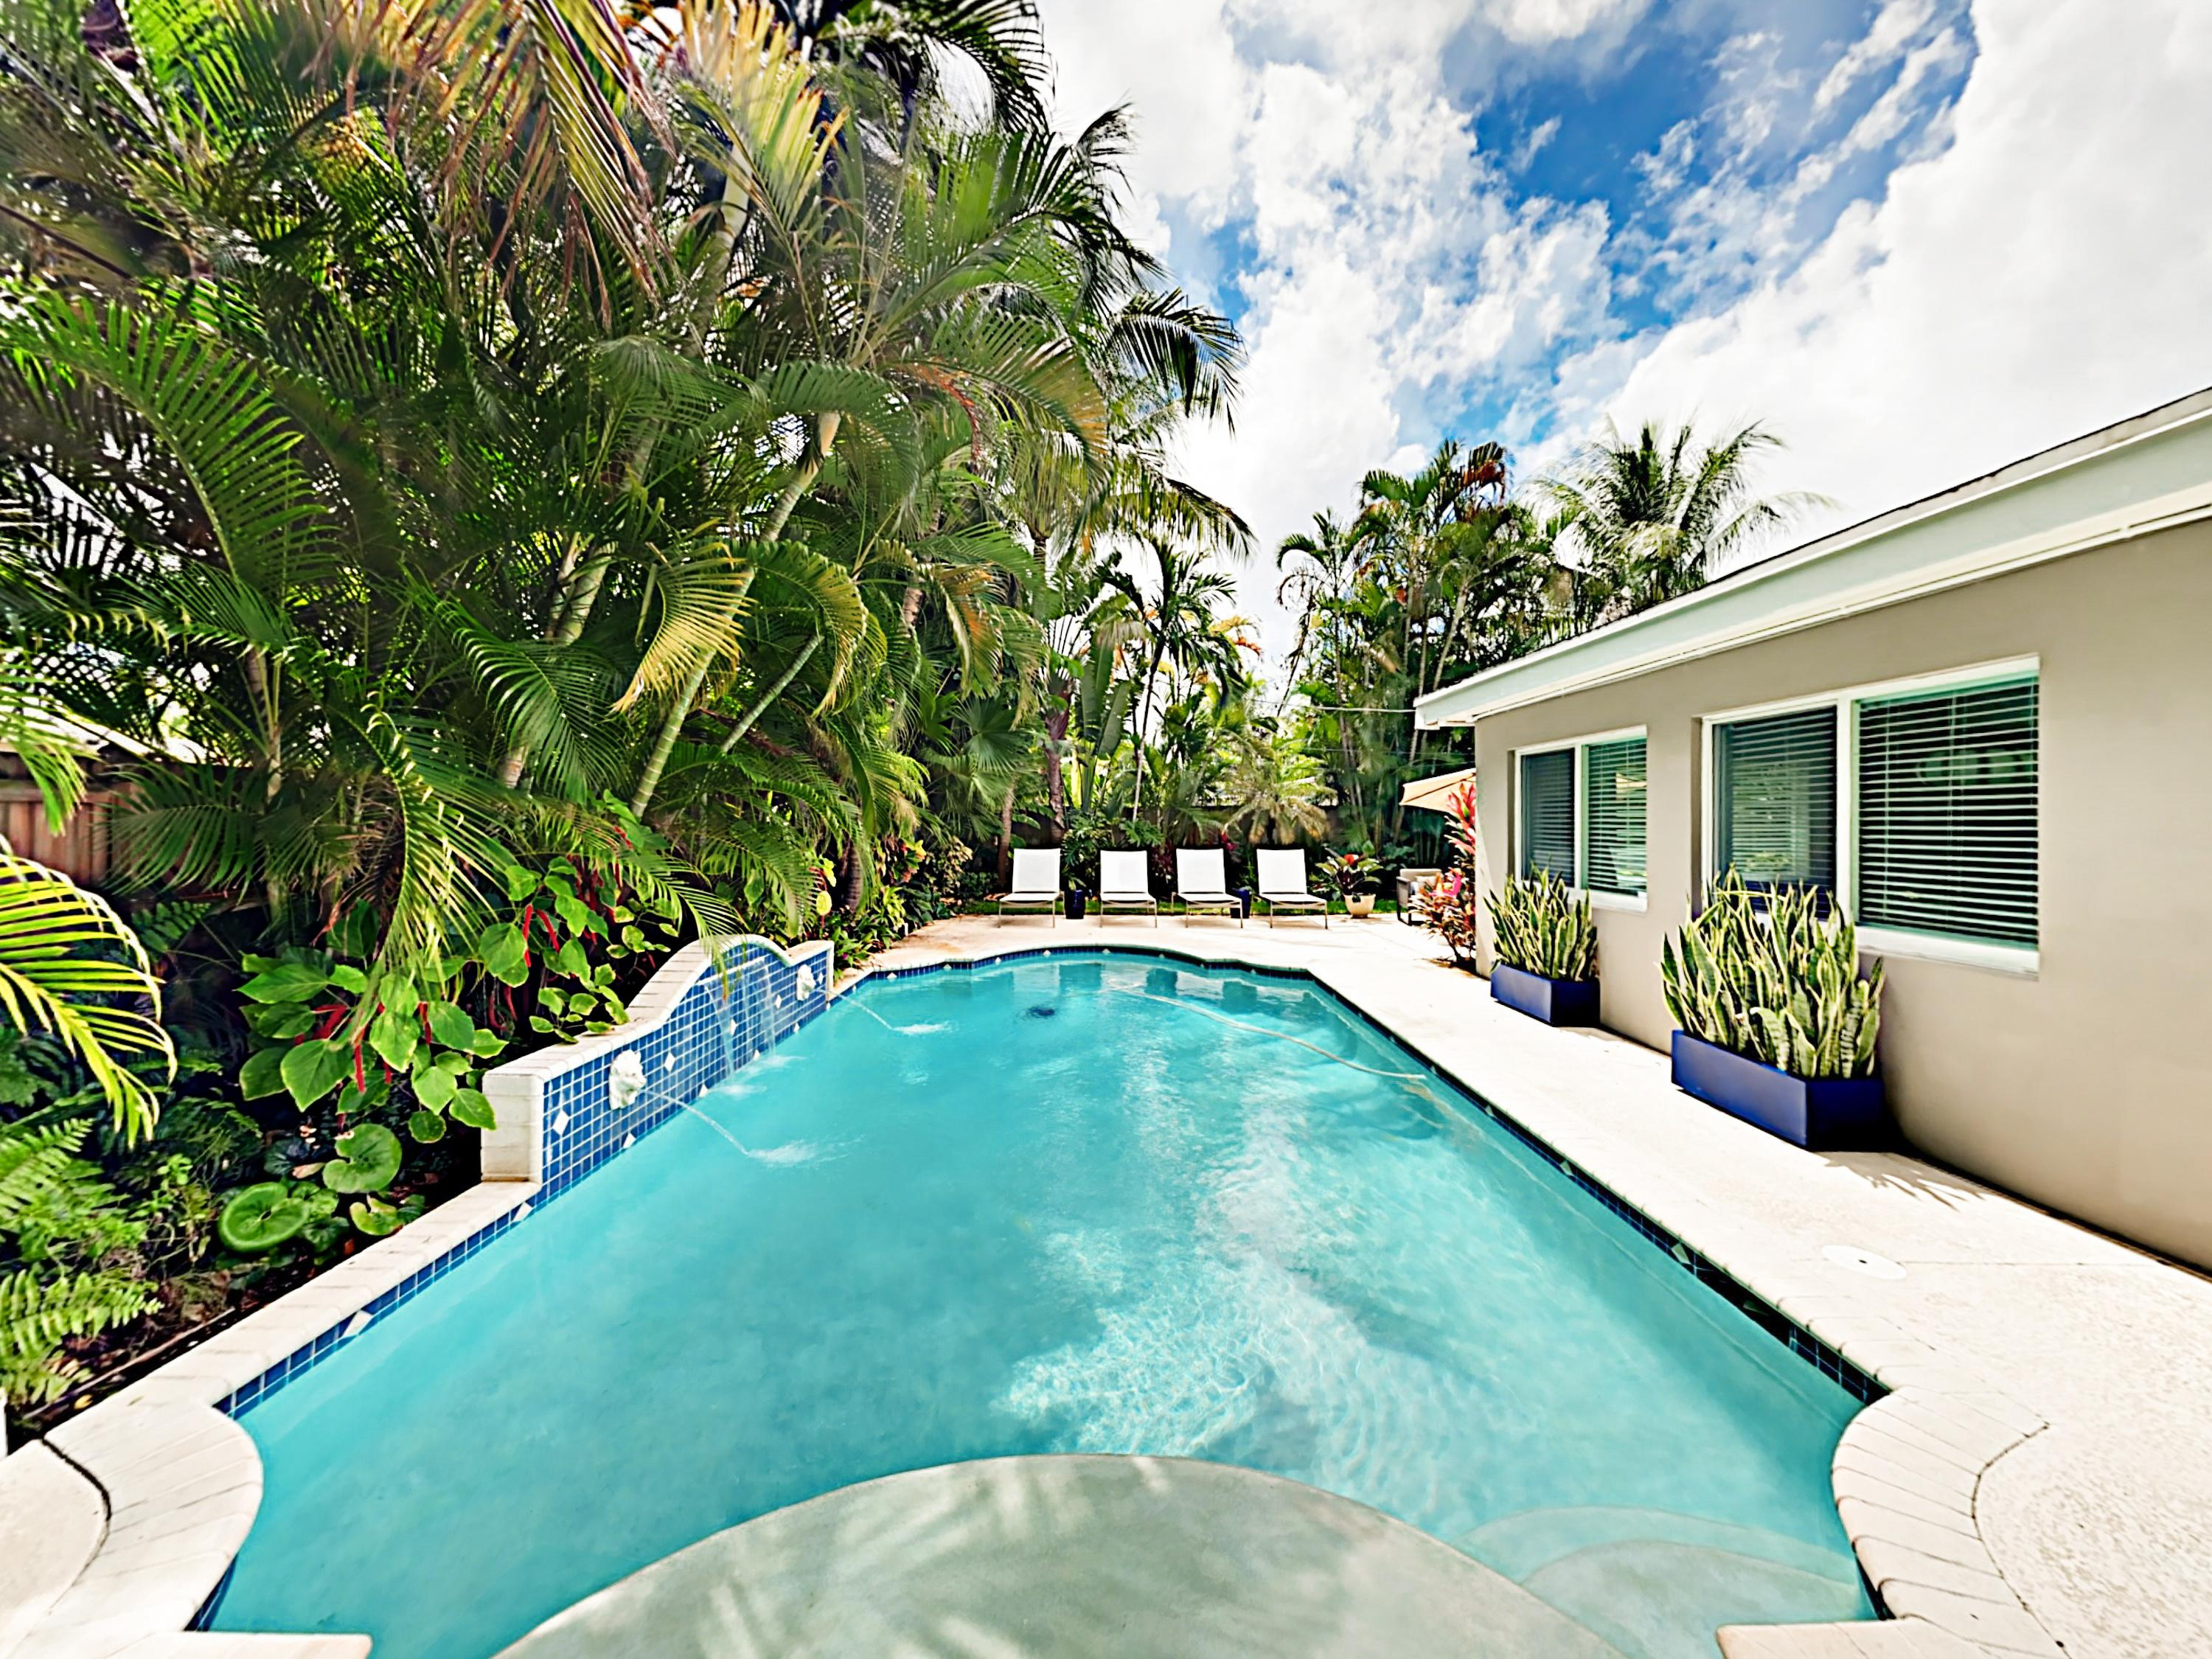 Welcome to Fort Lauderdale! This home is professionally managed by TurnKey Vacation Rentals.